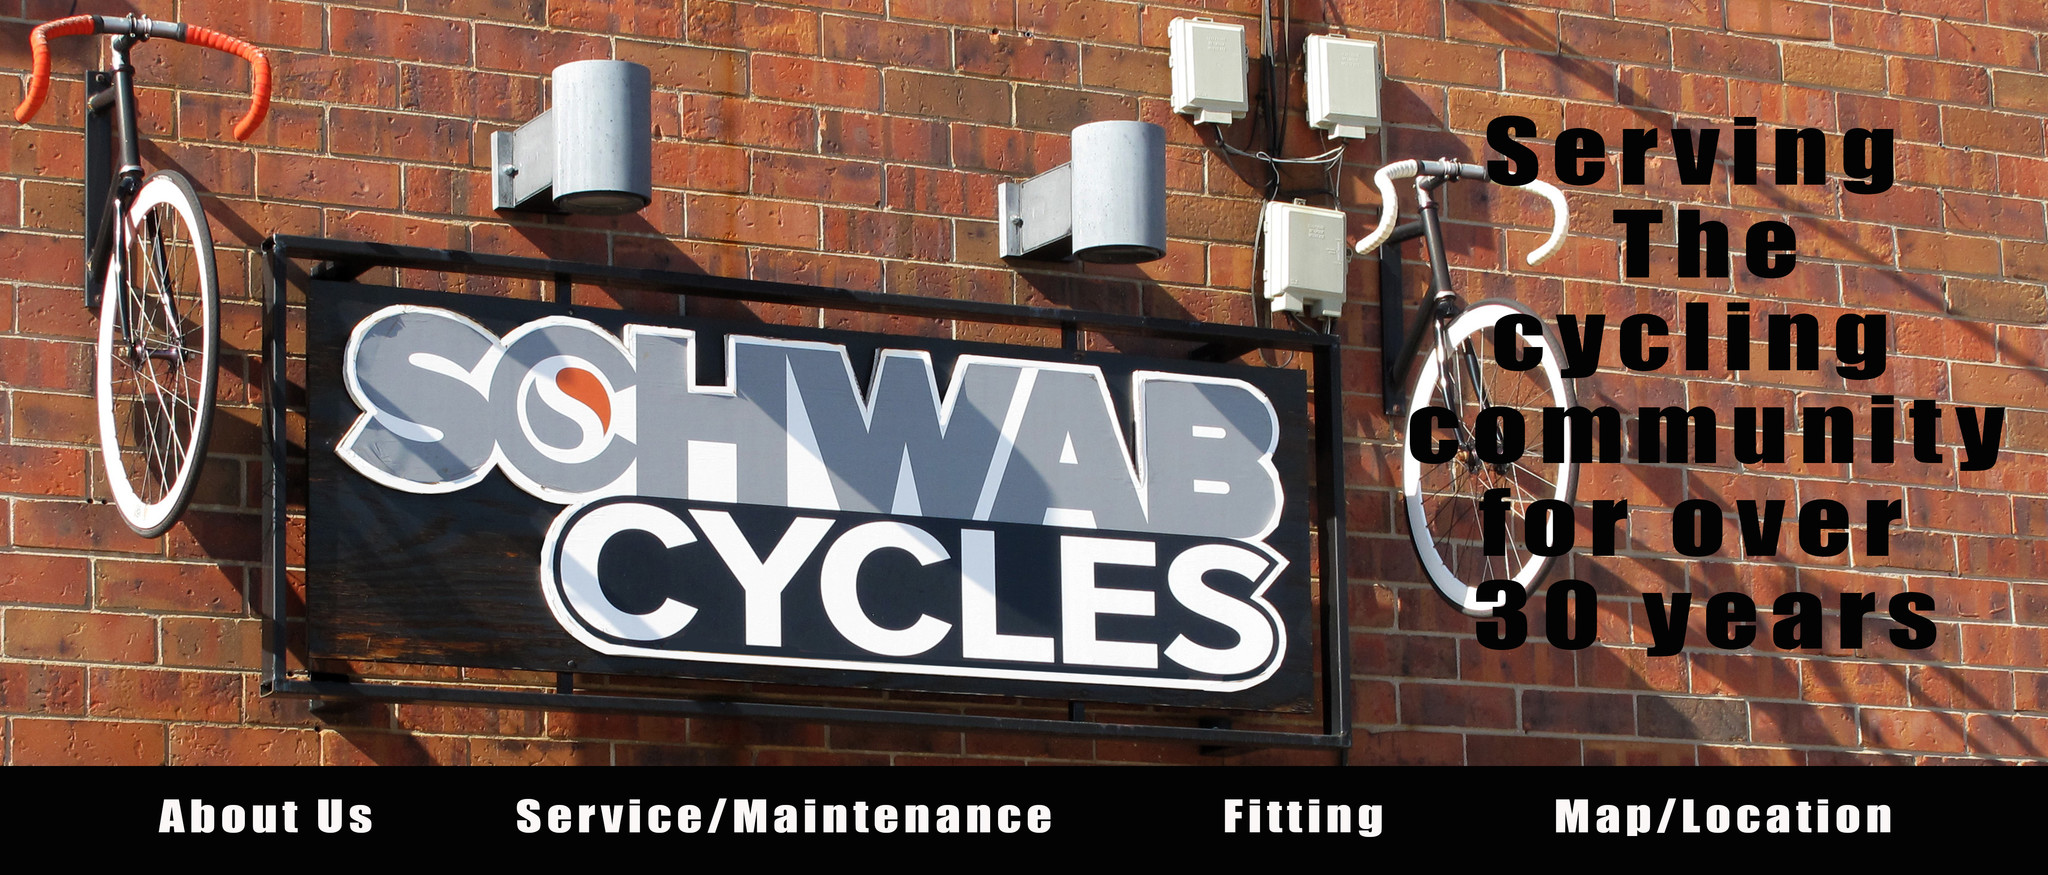 Schwab Cycles Homepage